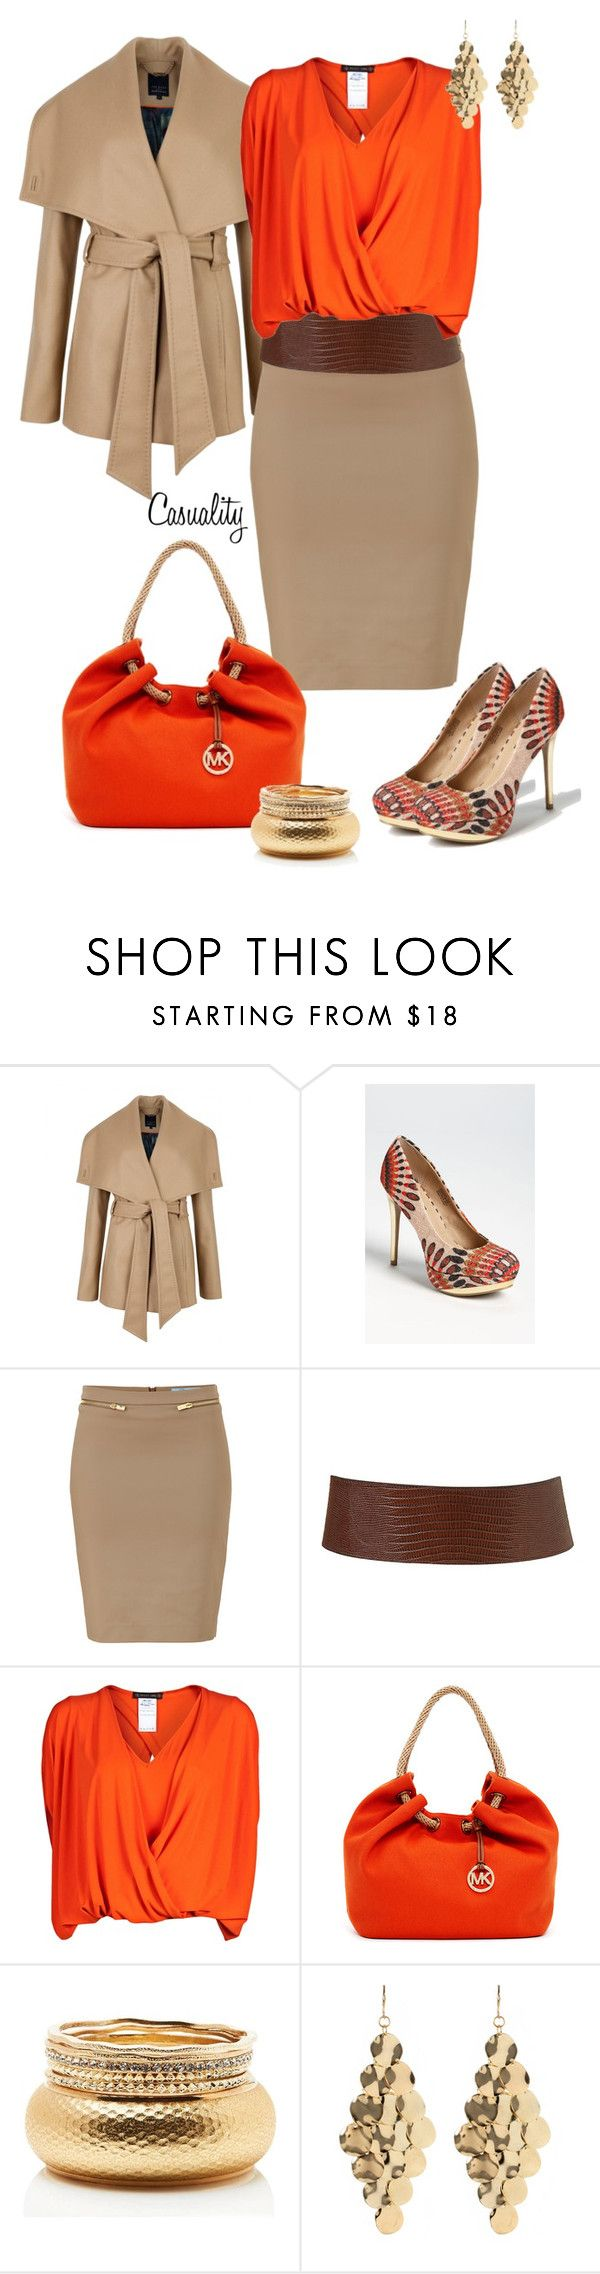 Nude Pencil Skirt, Canvas Mk Bag,  Zigigirl Peacock Pump by casuality ❤ liked on Polyvore featuring Ted Baker, ZIGIgirl, Blumarine, Plein Sud, MICHAEL Michael Kors, Forever New, Amrita Singh, pencil skirts, work and color